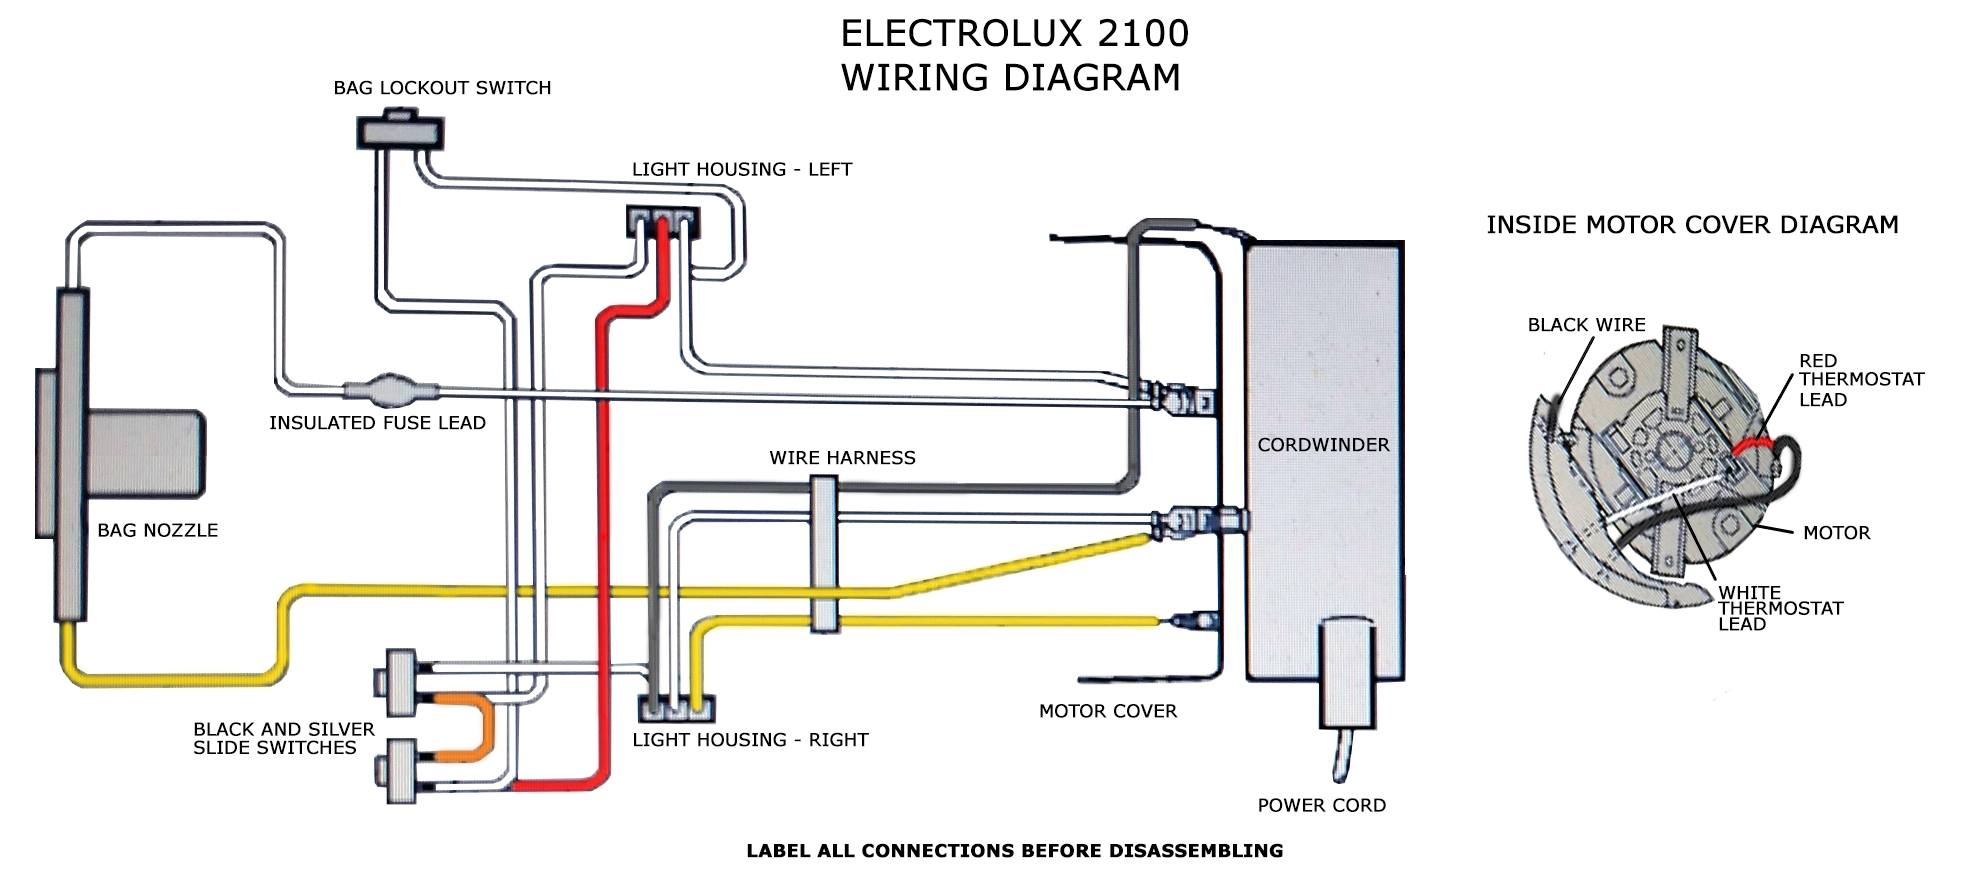 2100 wiring diagram electrolux 2100 wiring diagram central vacuum wiring diagram at alyssarenee.co